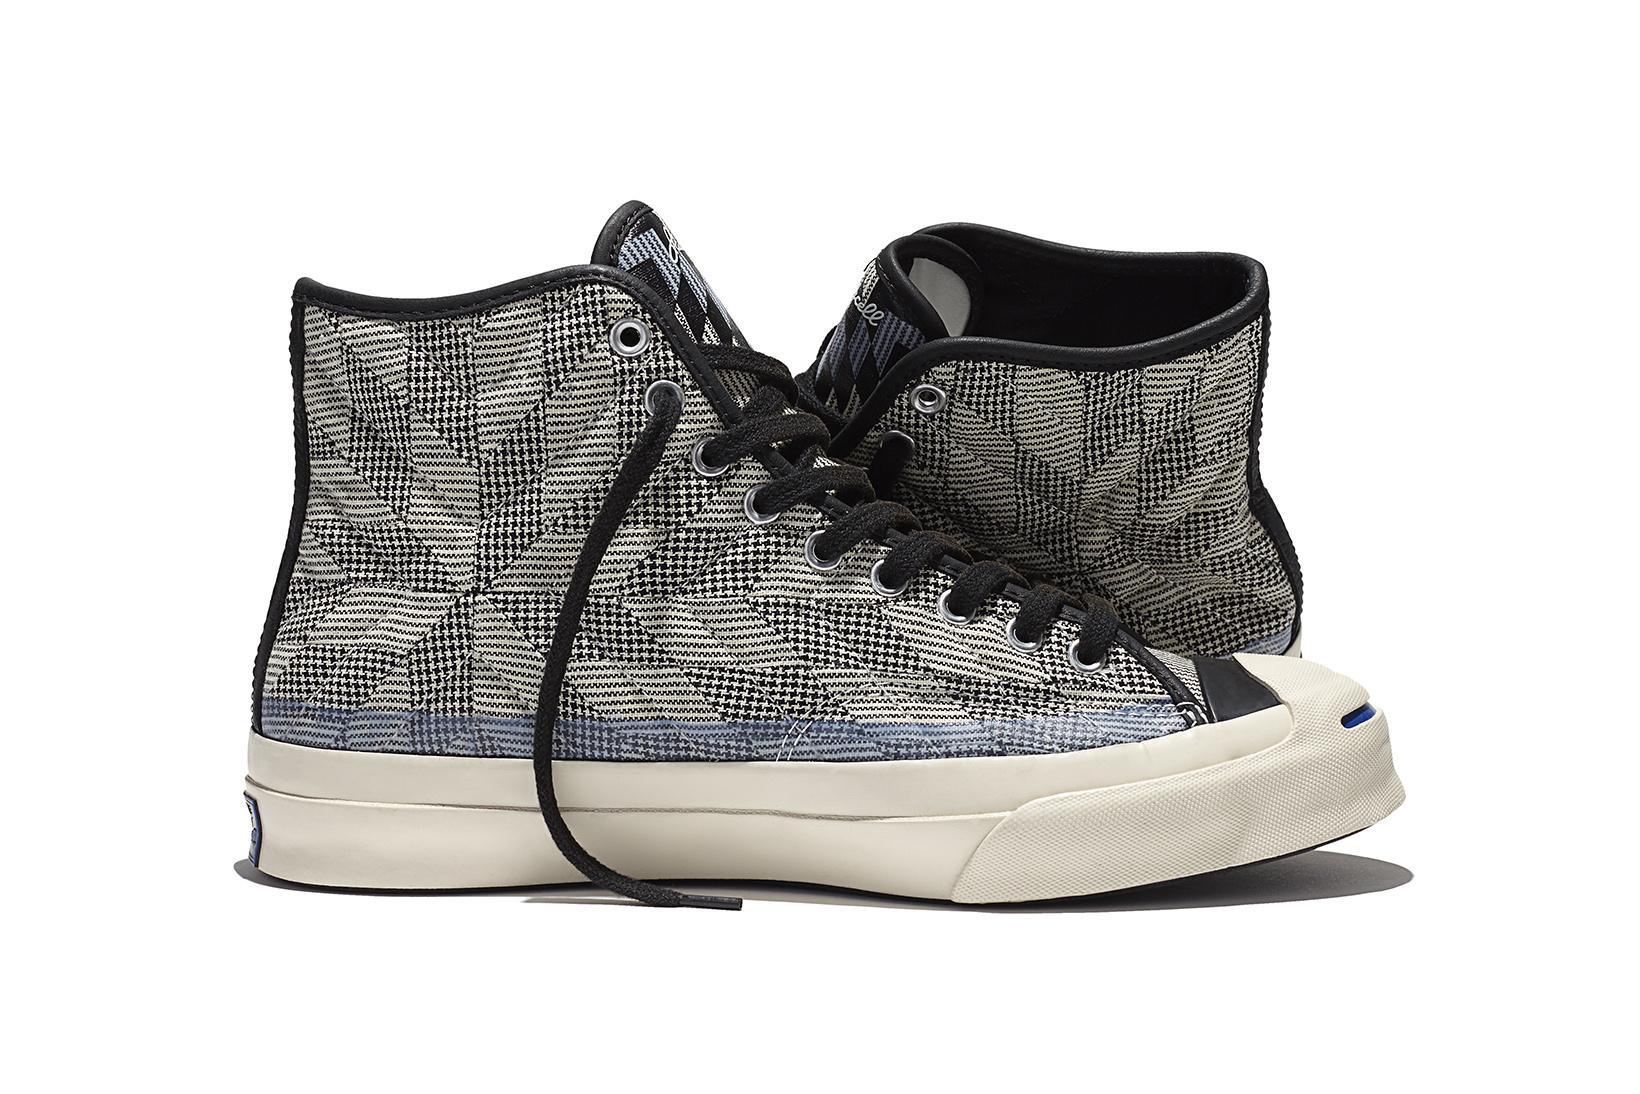 converse-jack-purcell-mid-quilt-1